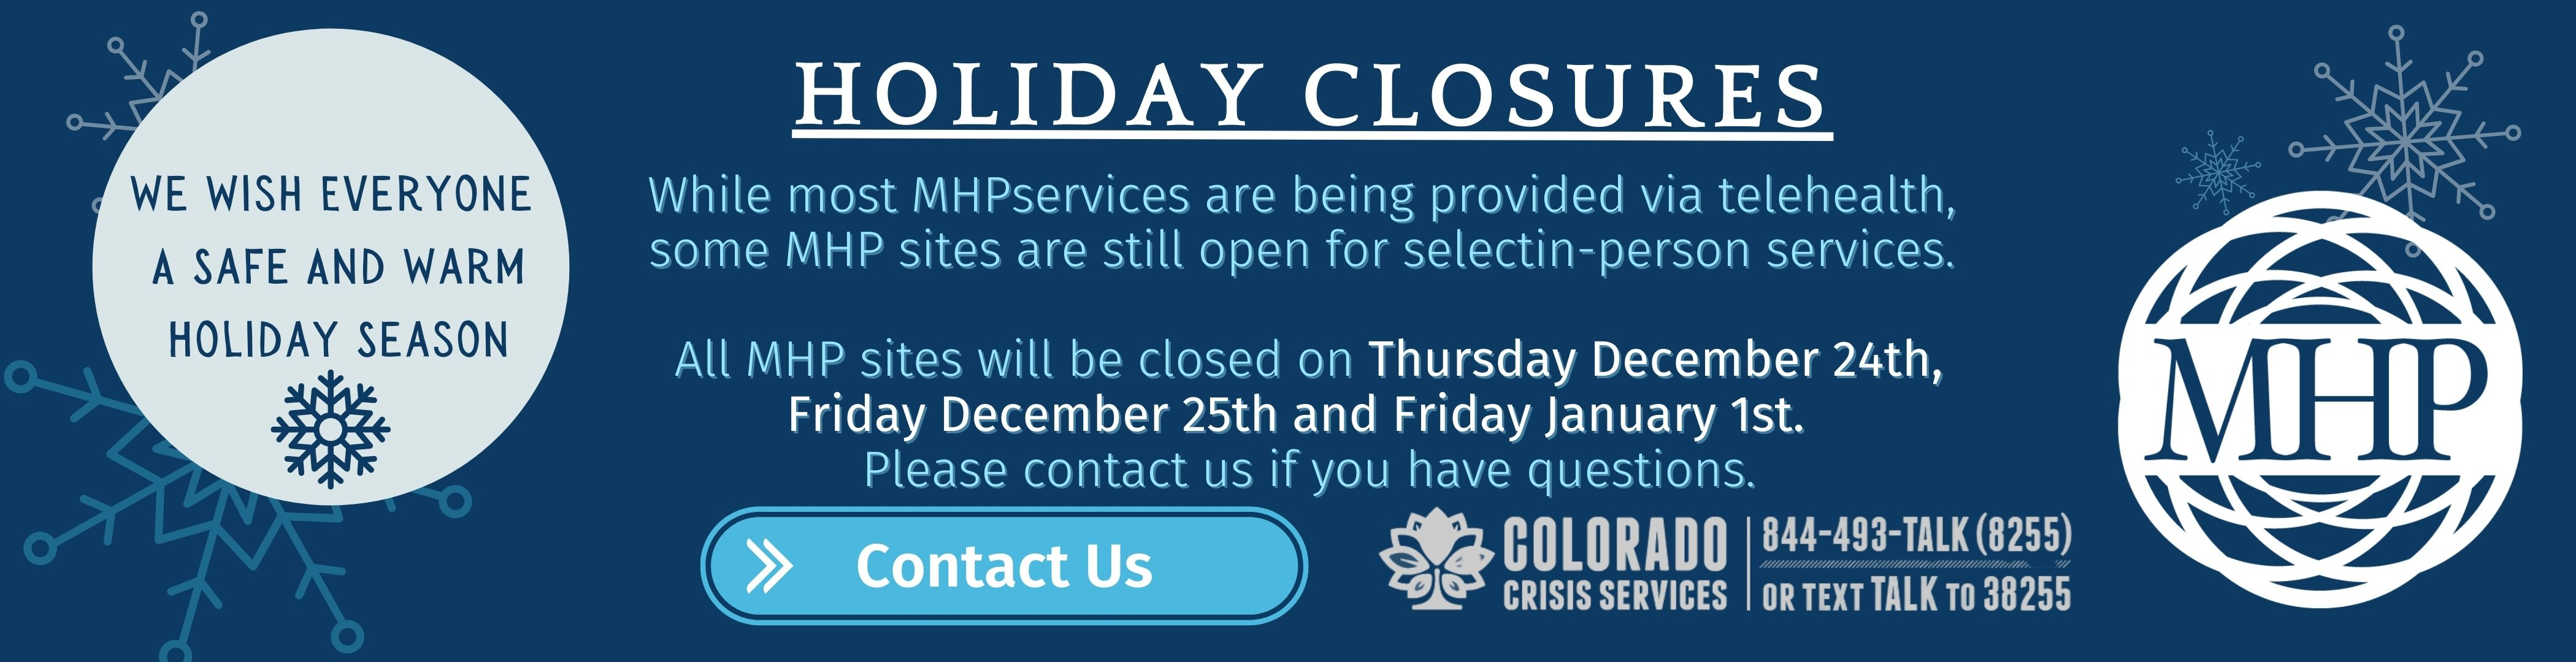 TS-Instagram Holiday Closure Website Banner (1)